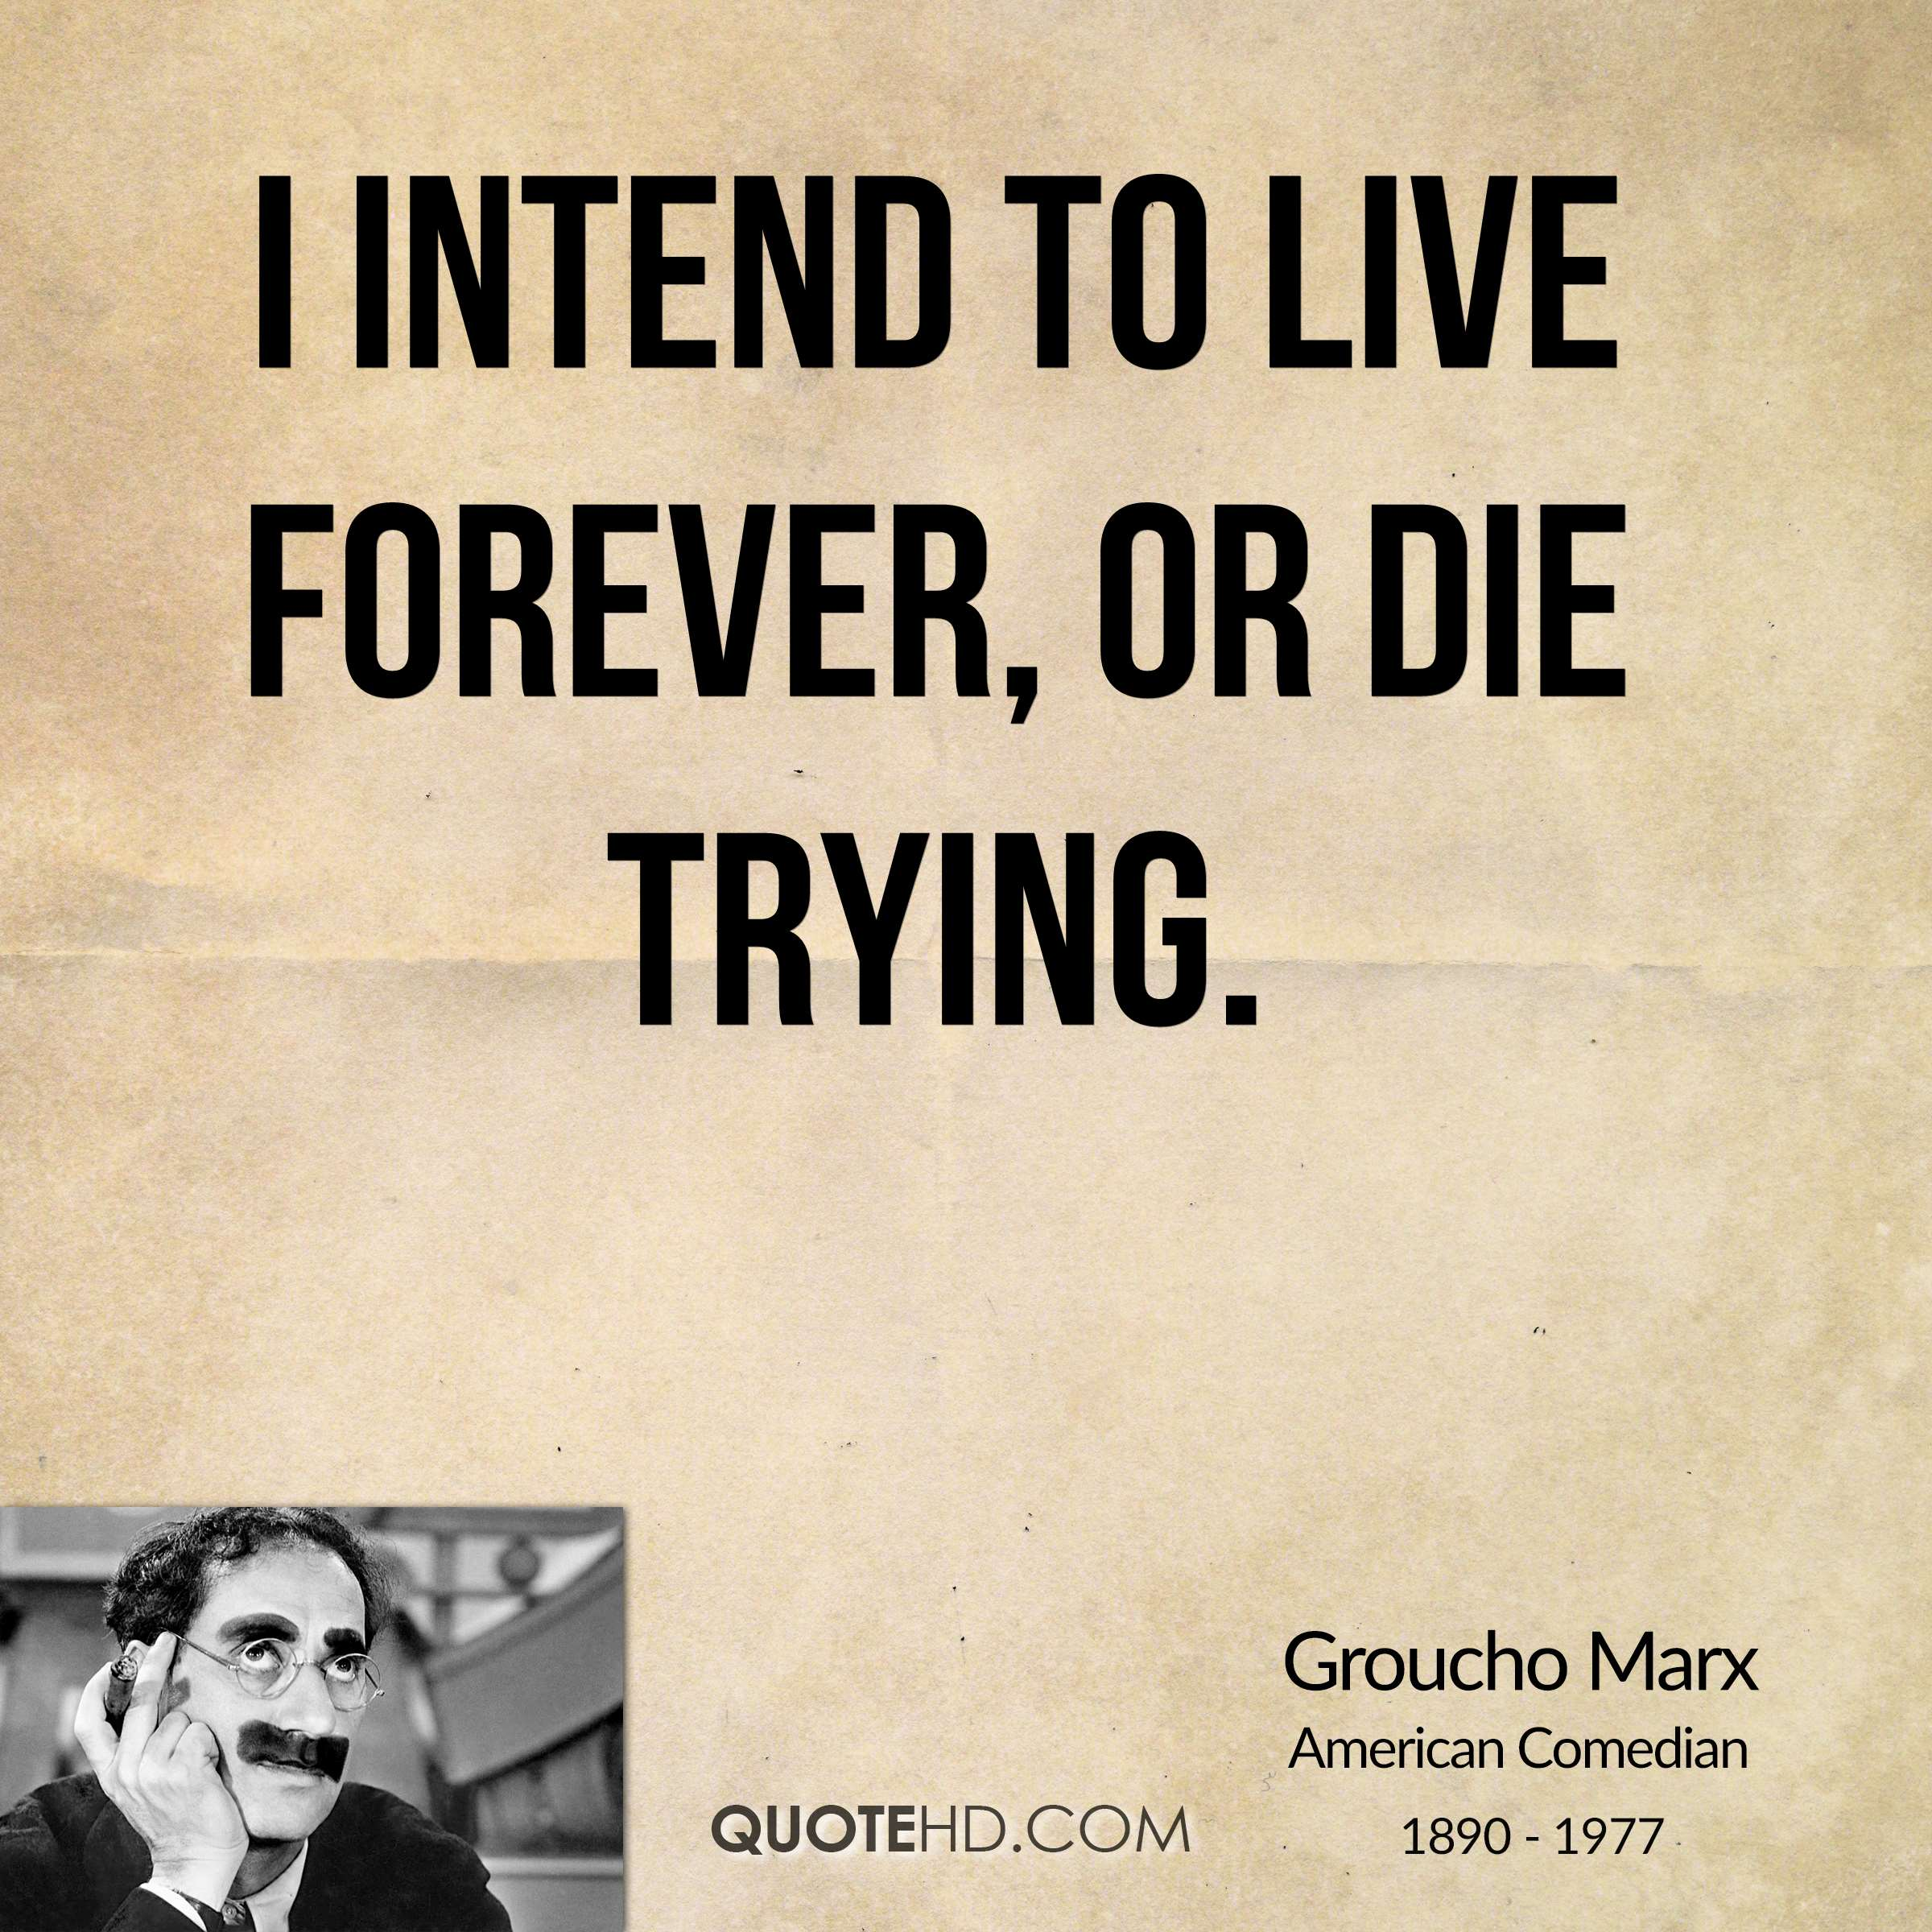 I intend to live forever, or die trying.